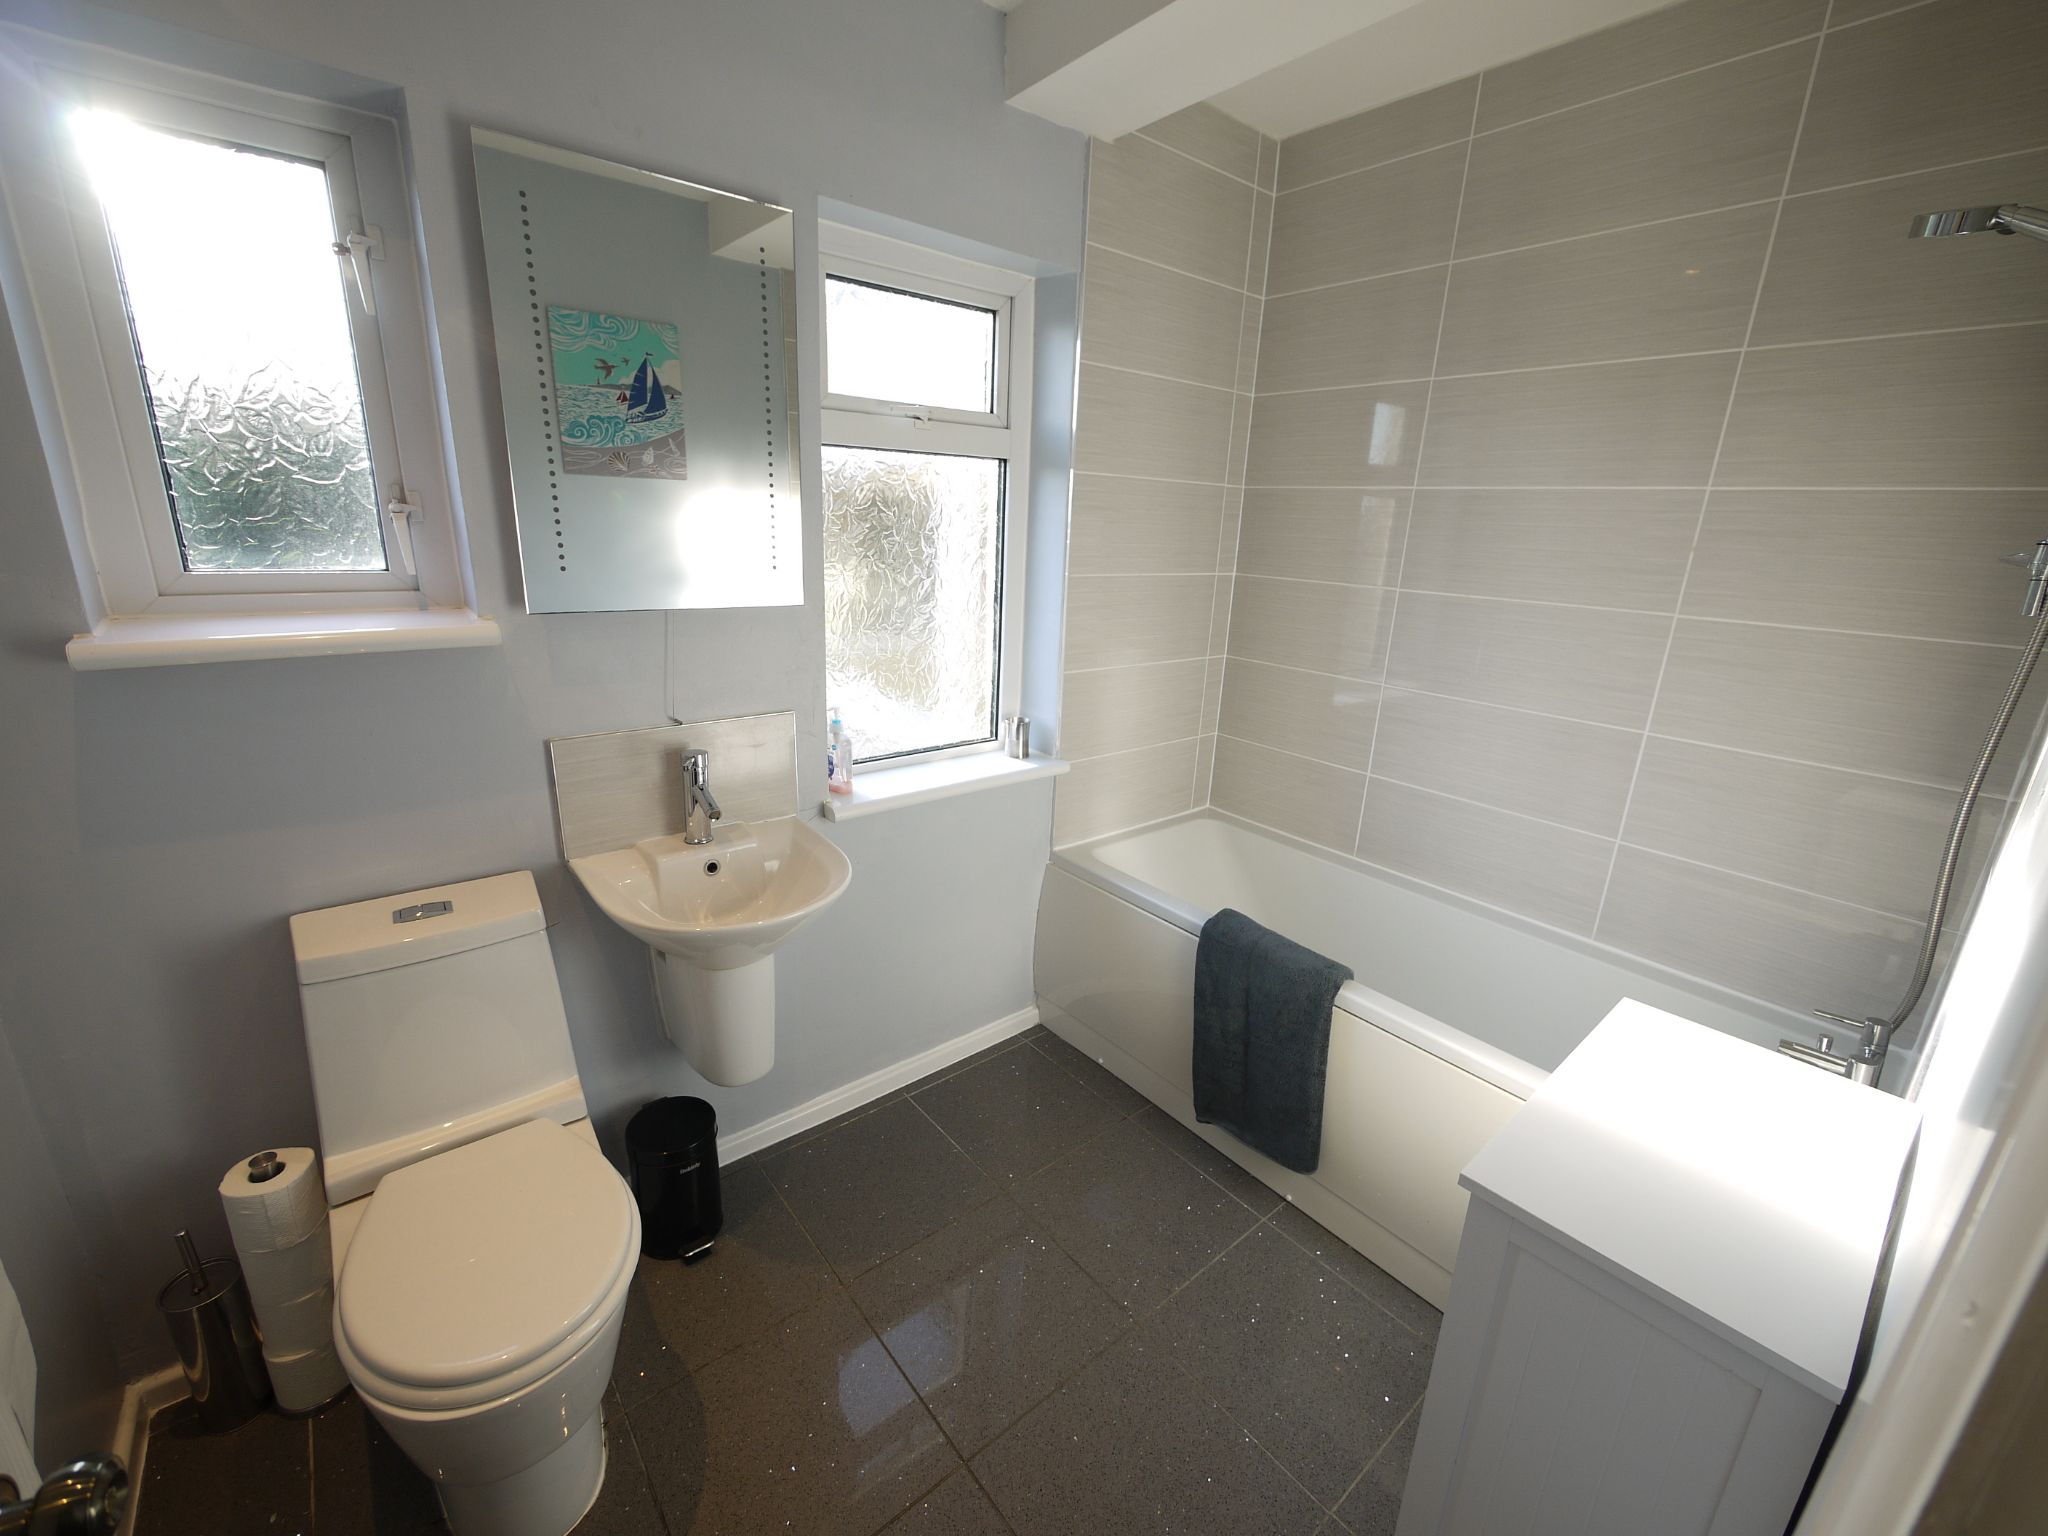 5 bedroom detached bungalow For Sale in Brighouse - ground flr bathroom.